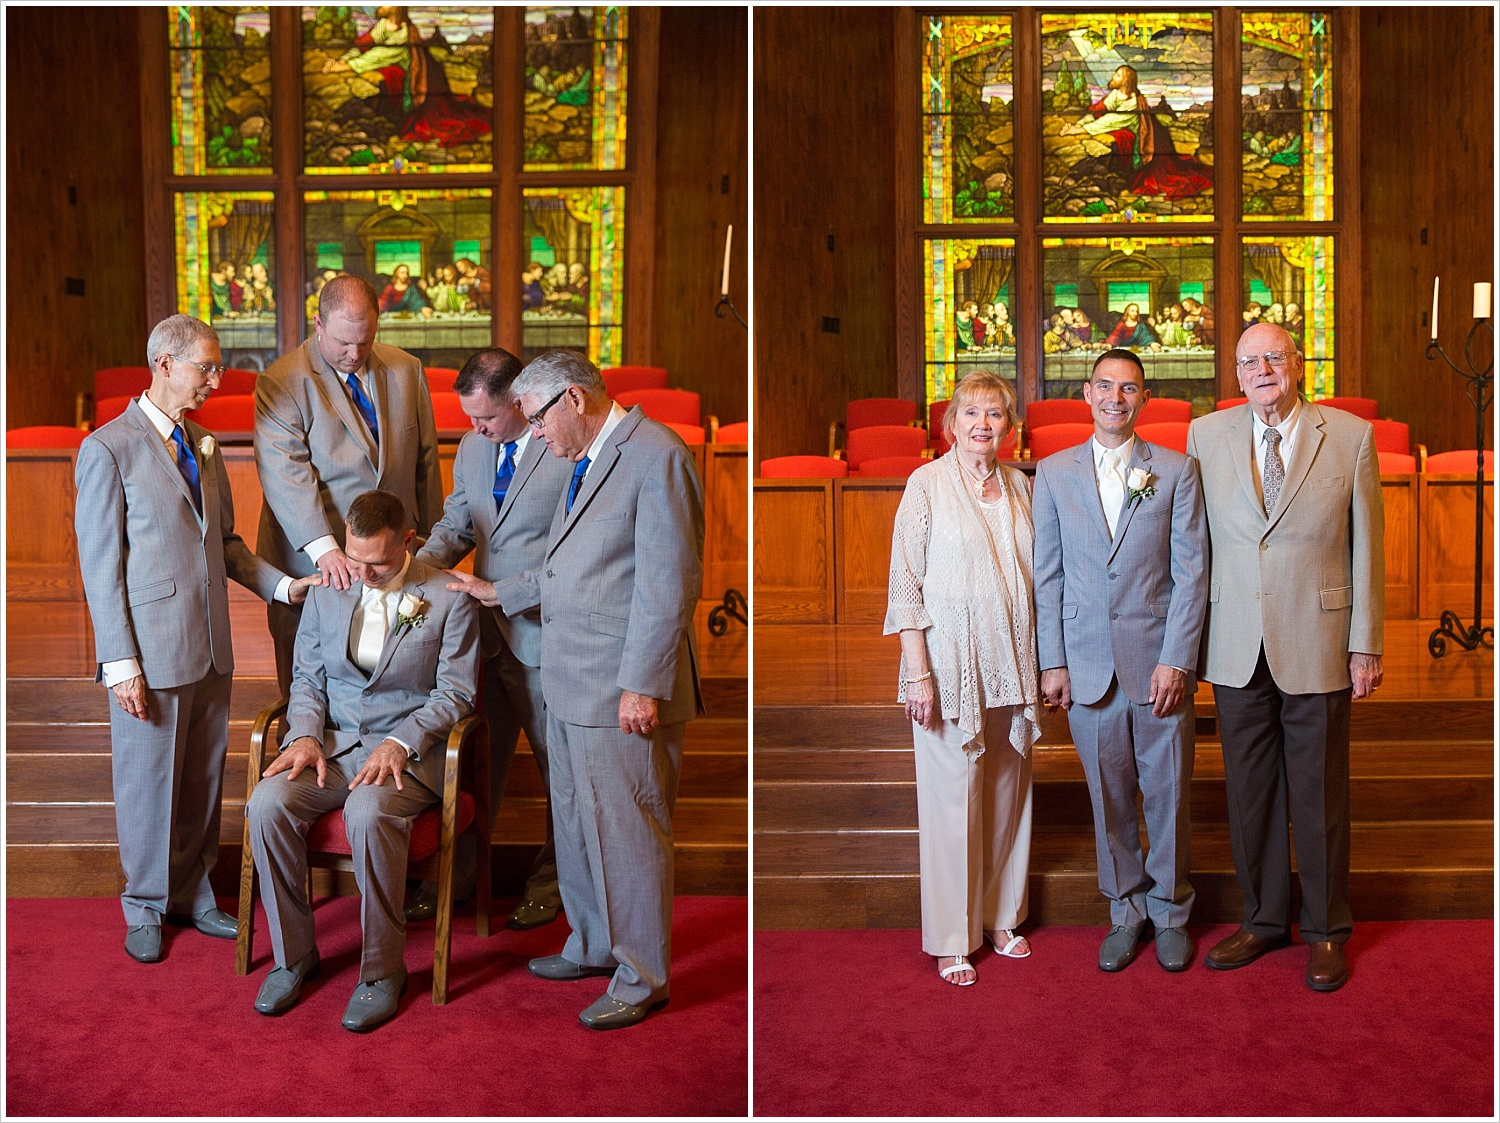 Groomsmen pray over groom in front of gorgeous stained glass backdrop at Central Presbyterian Church in Waco/Woodway, TX - Jason & Melaina Photography, www.jasonandmelaina.com